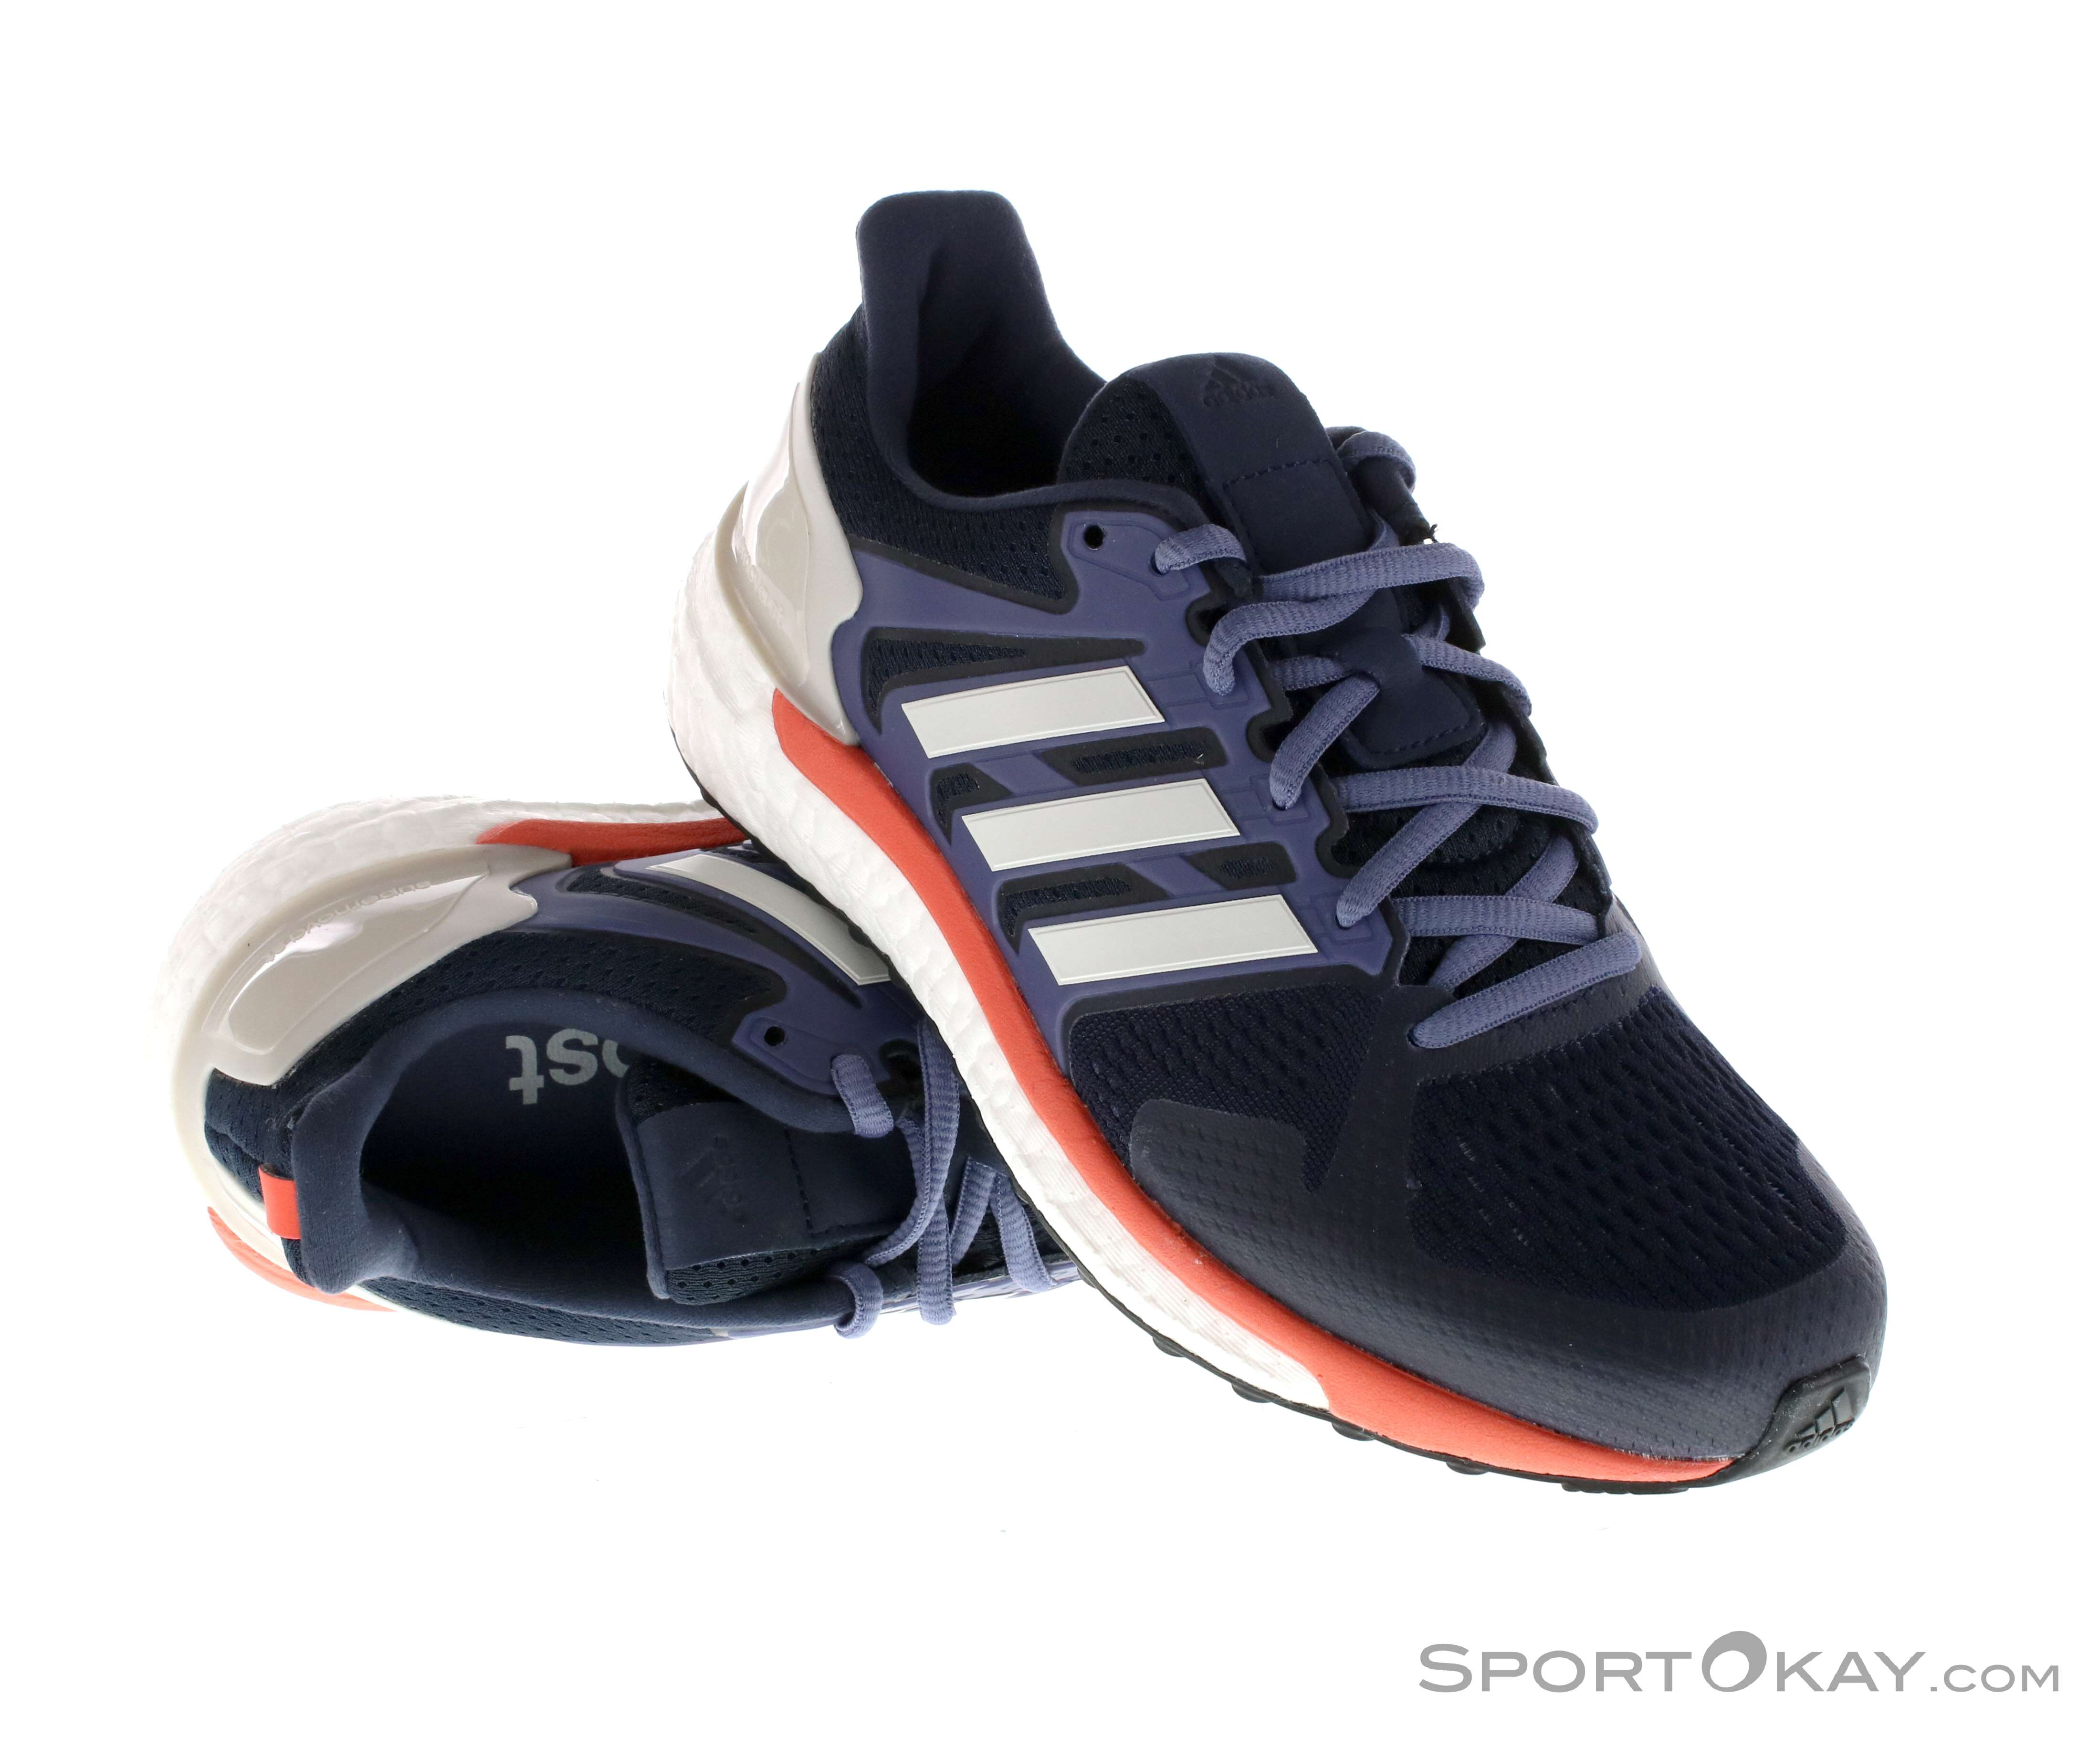 373a266a5 adidas Supernova ST Womens Running Shoes - Running Shoes - Running ...